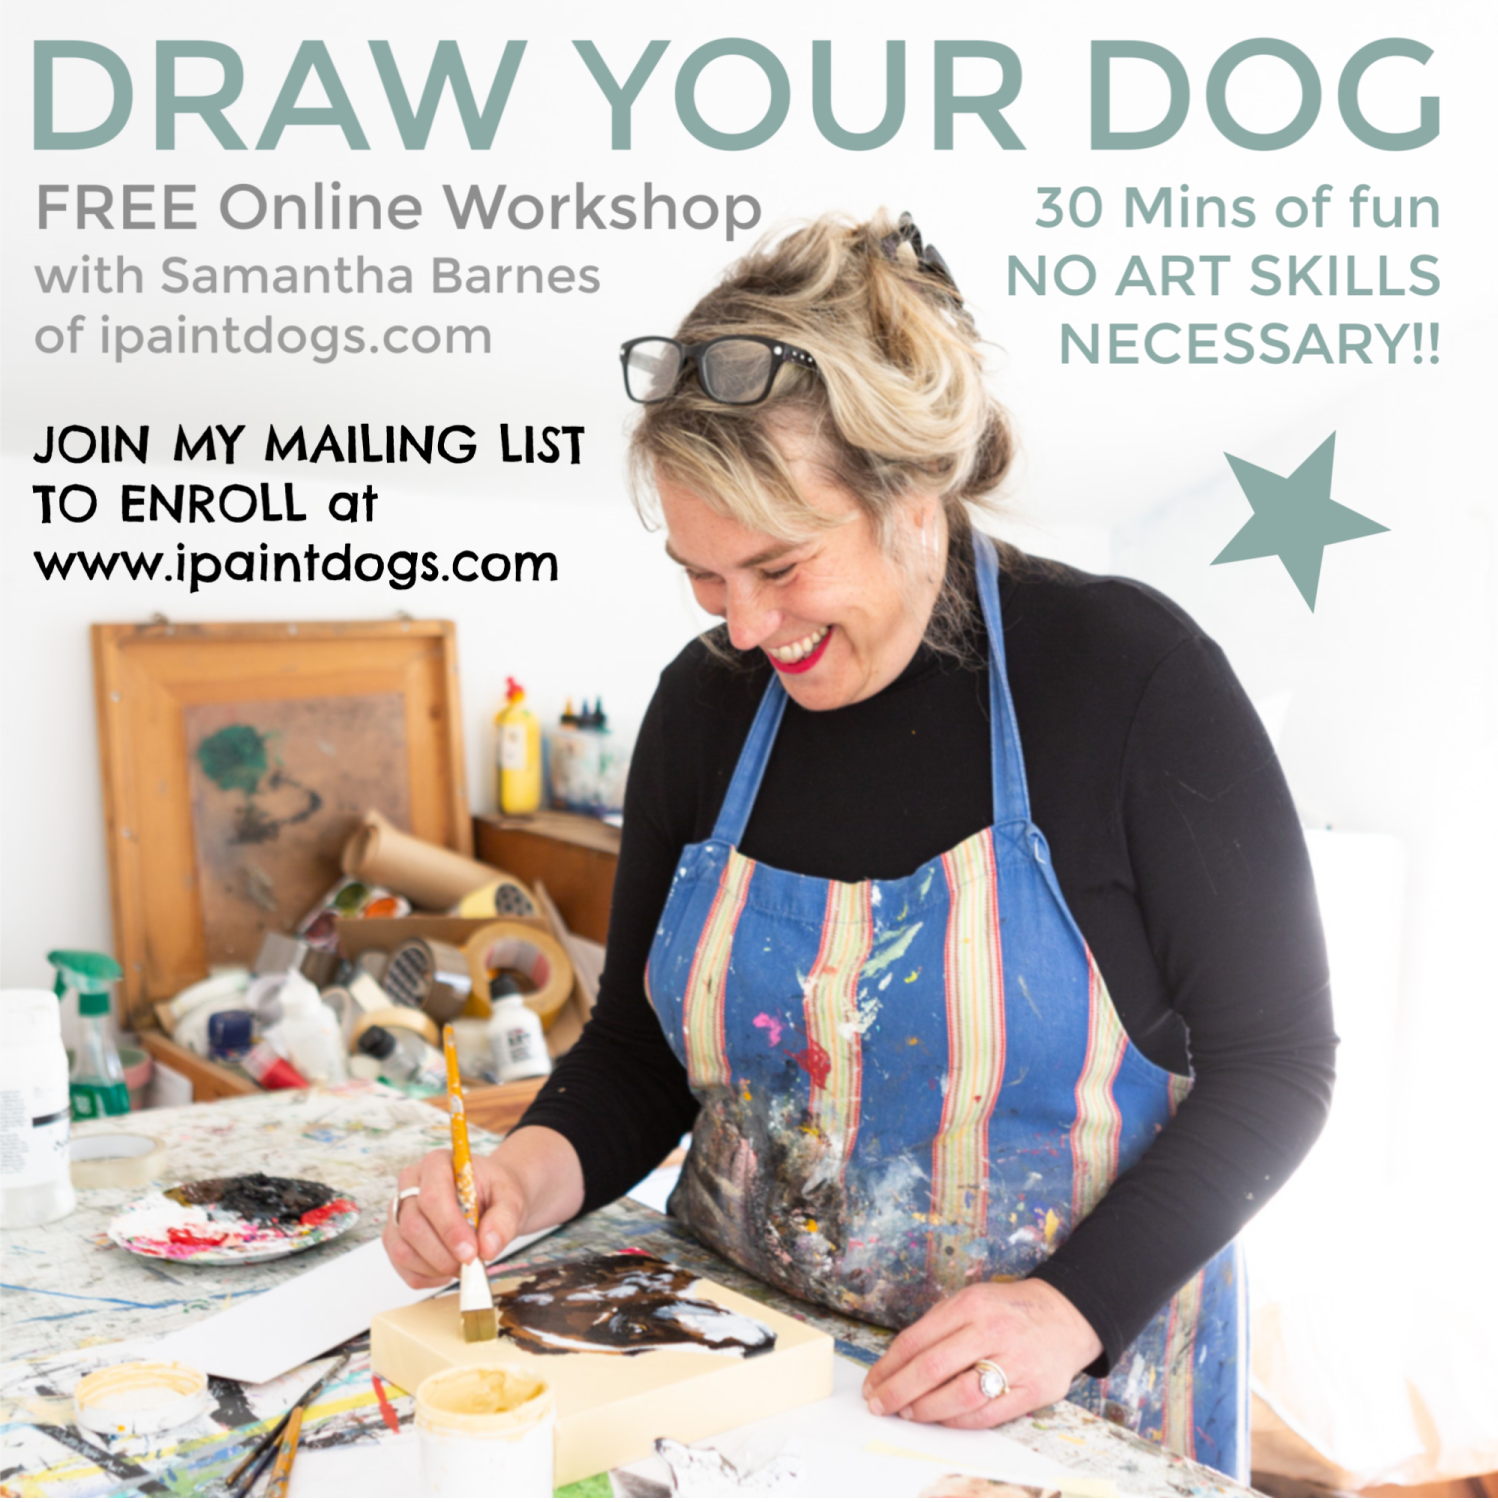 'Draw your Dog' online workshop with Samantha Barnes, ipaintdogs.com